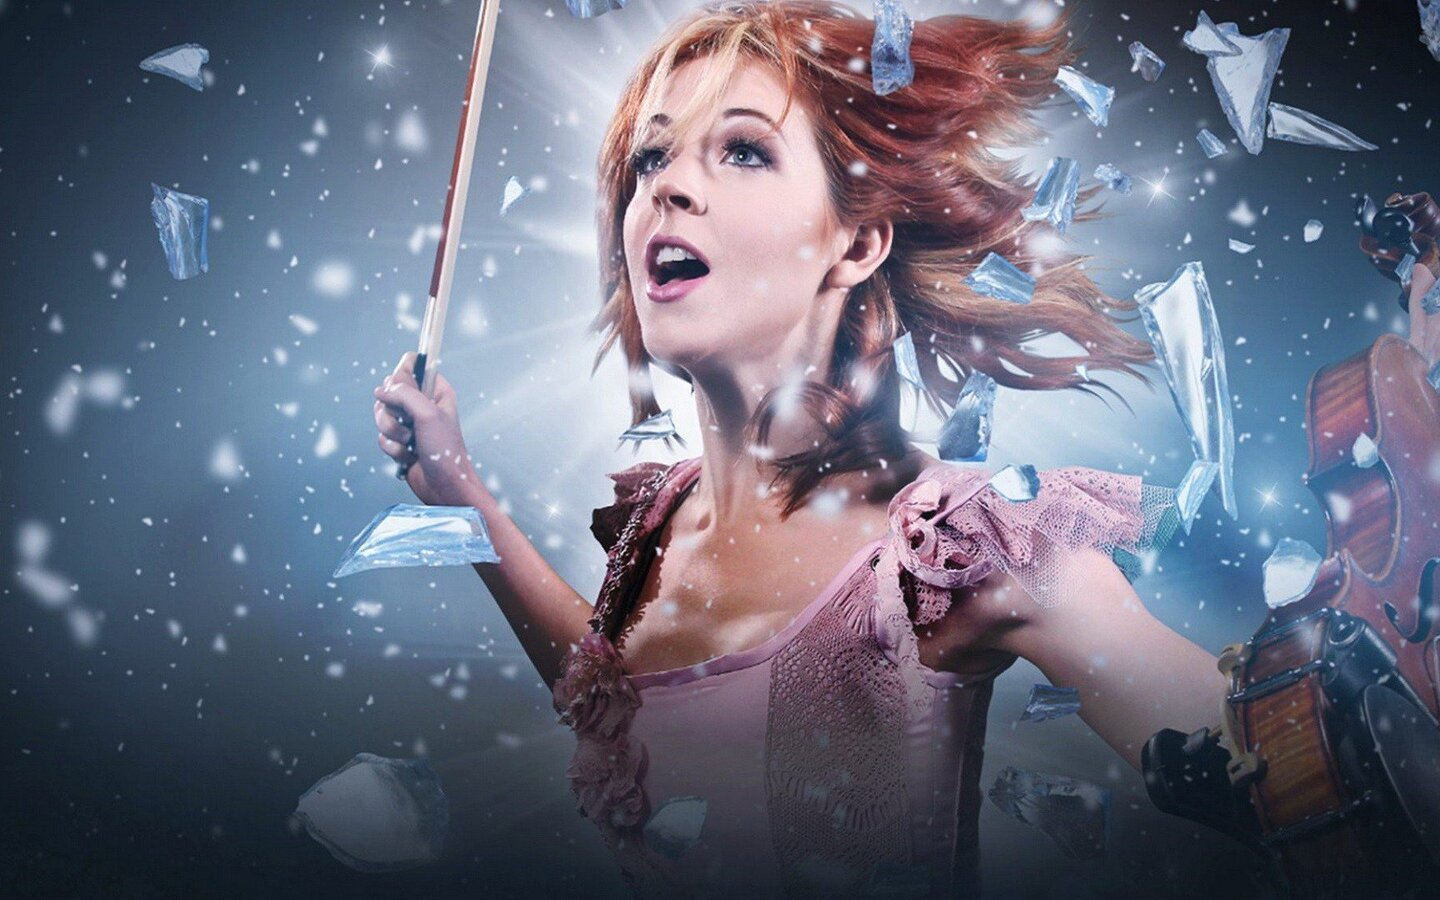 lindsey-stirling-artwork-wallpaper.jpg